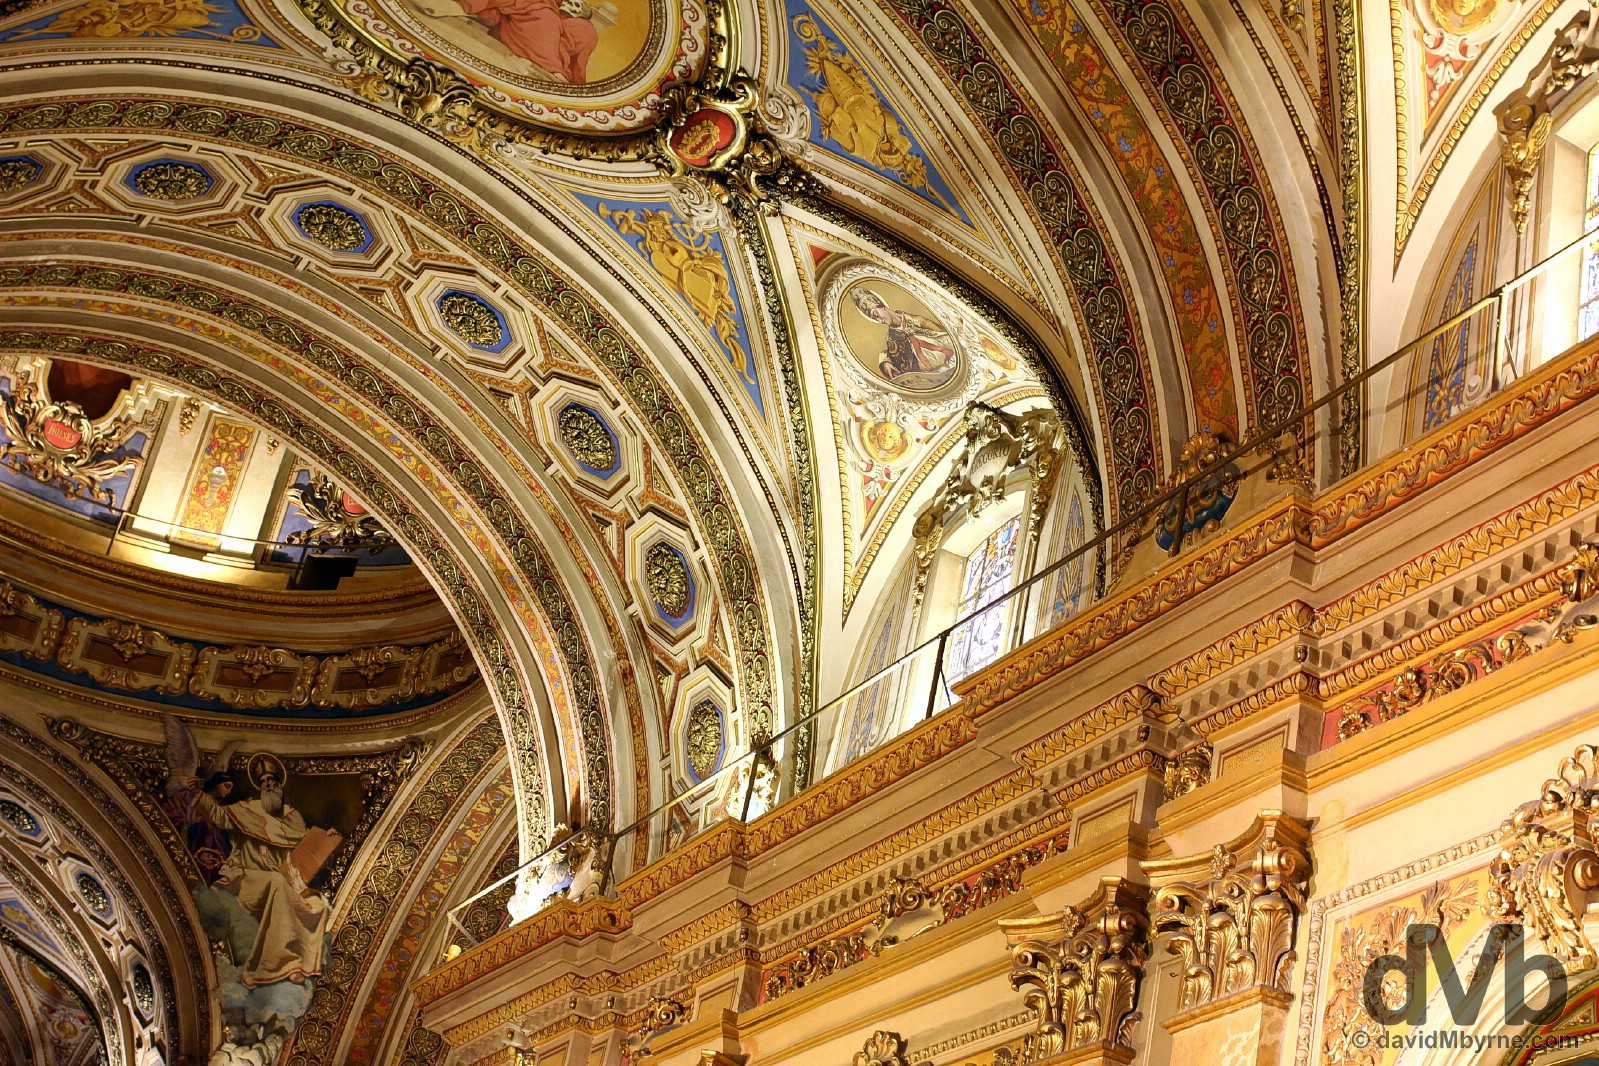 A portion of walls and ceiling of the Cathedral in Cordoba, Argentina. September 23, 2015.